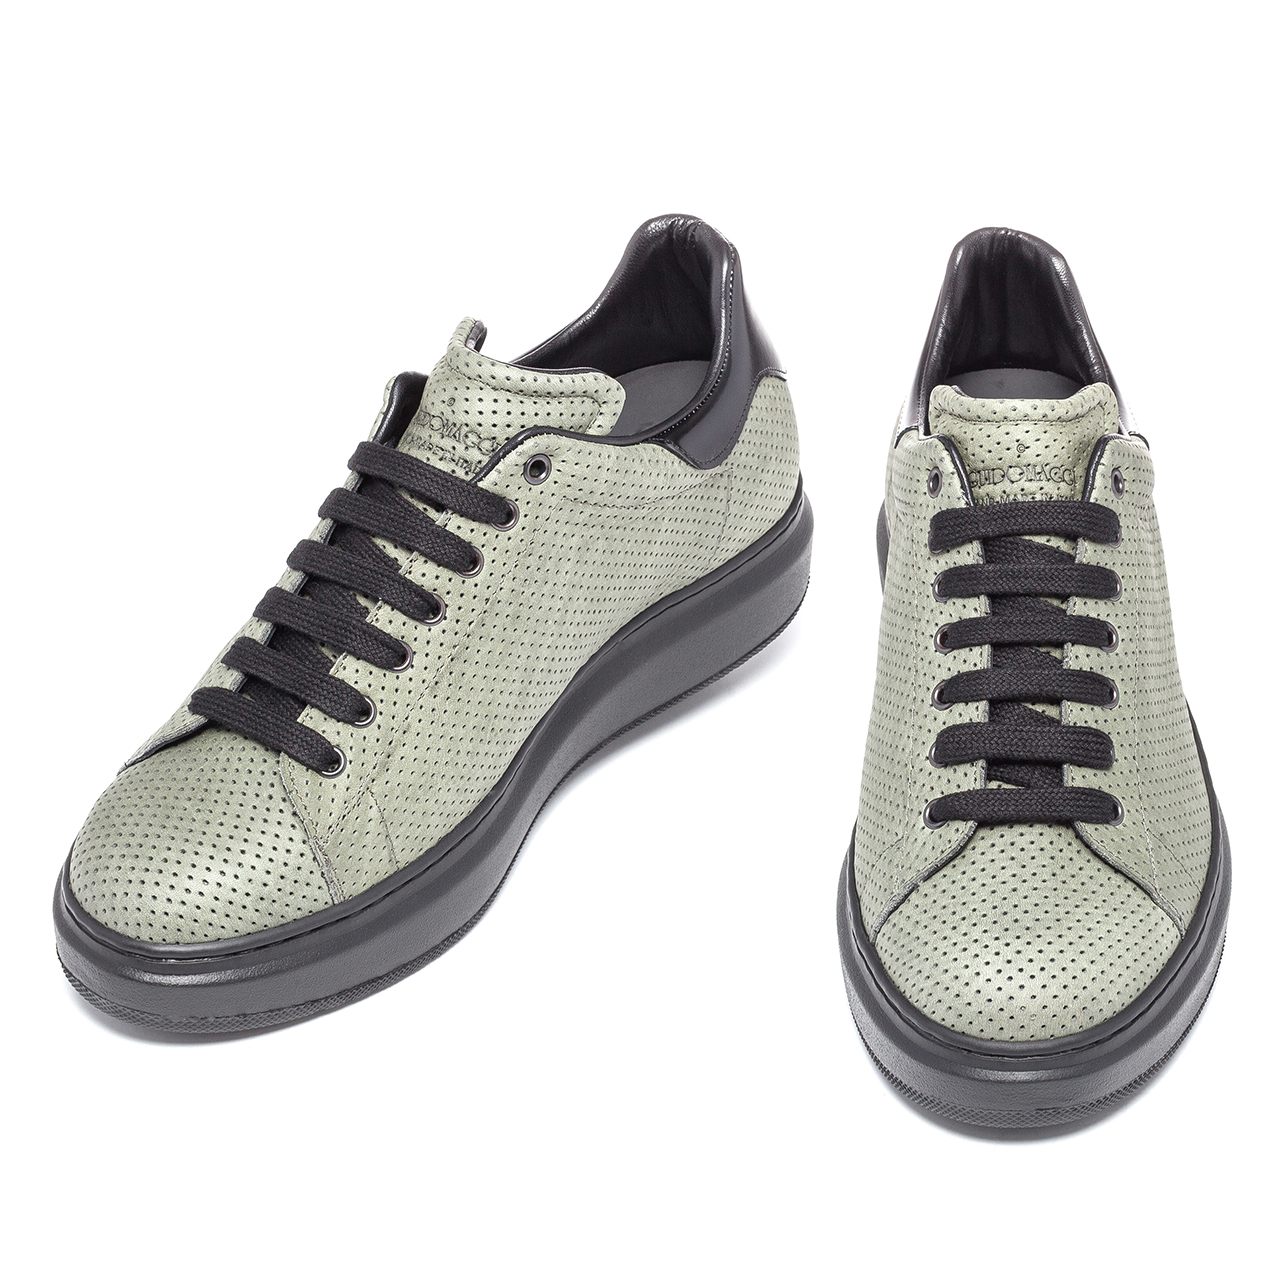 fashion style elevator shoes elevator shoes for